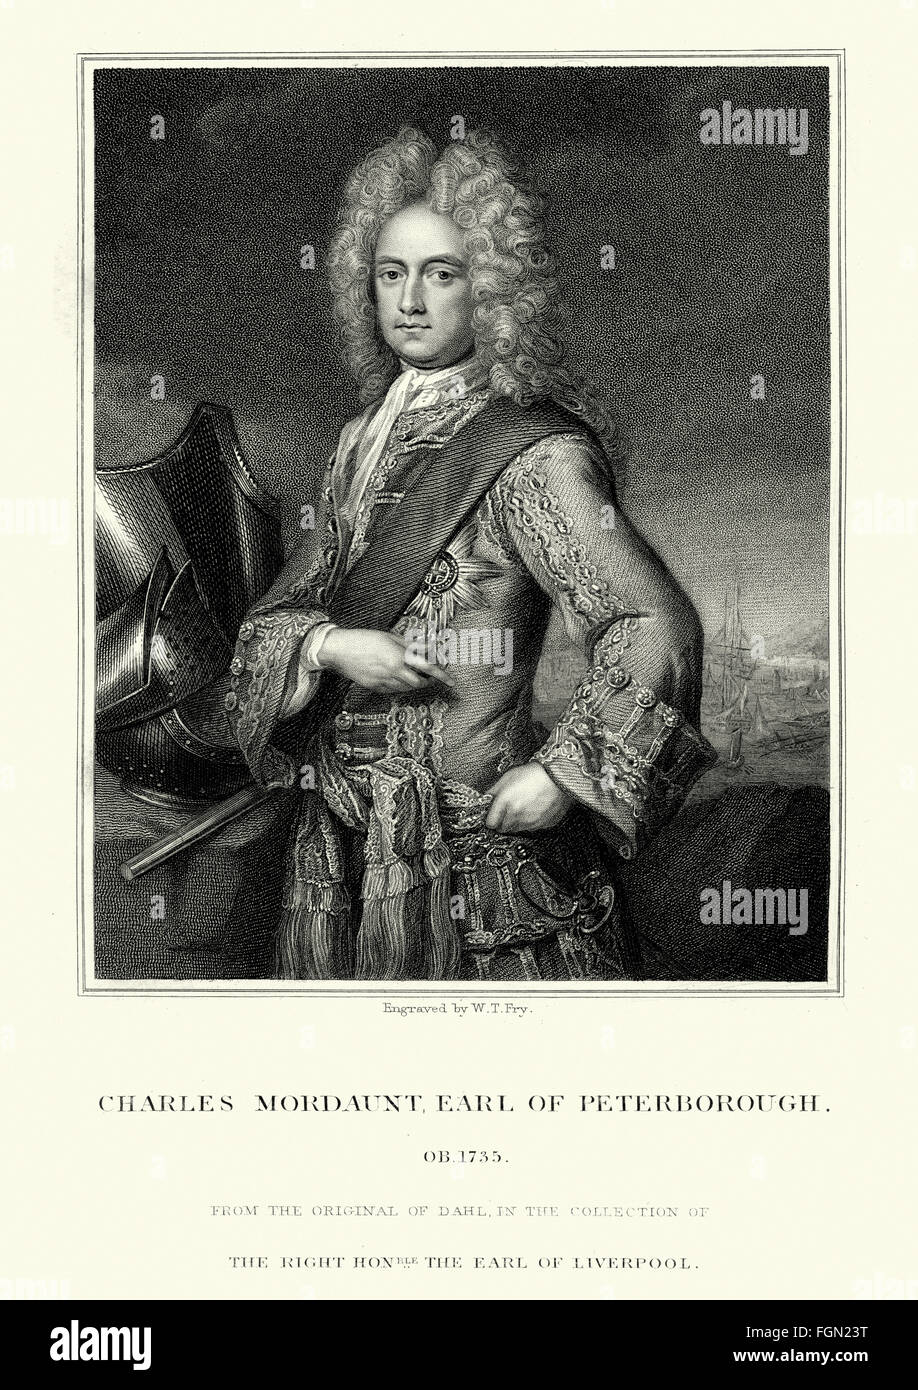 Portrait of Charles Mordaunt, 3rd Earl of Peterborough 1658 to 1735 an English nobleman and military leader. Stock Photo